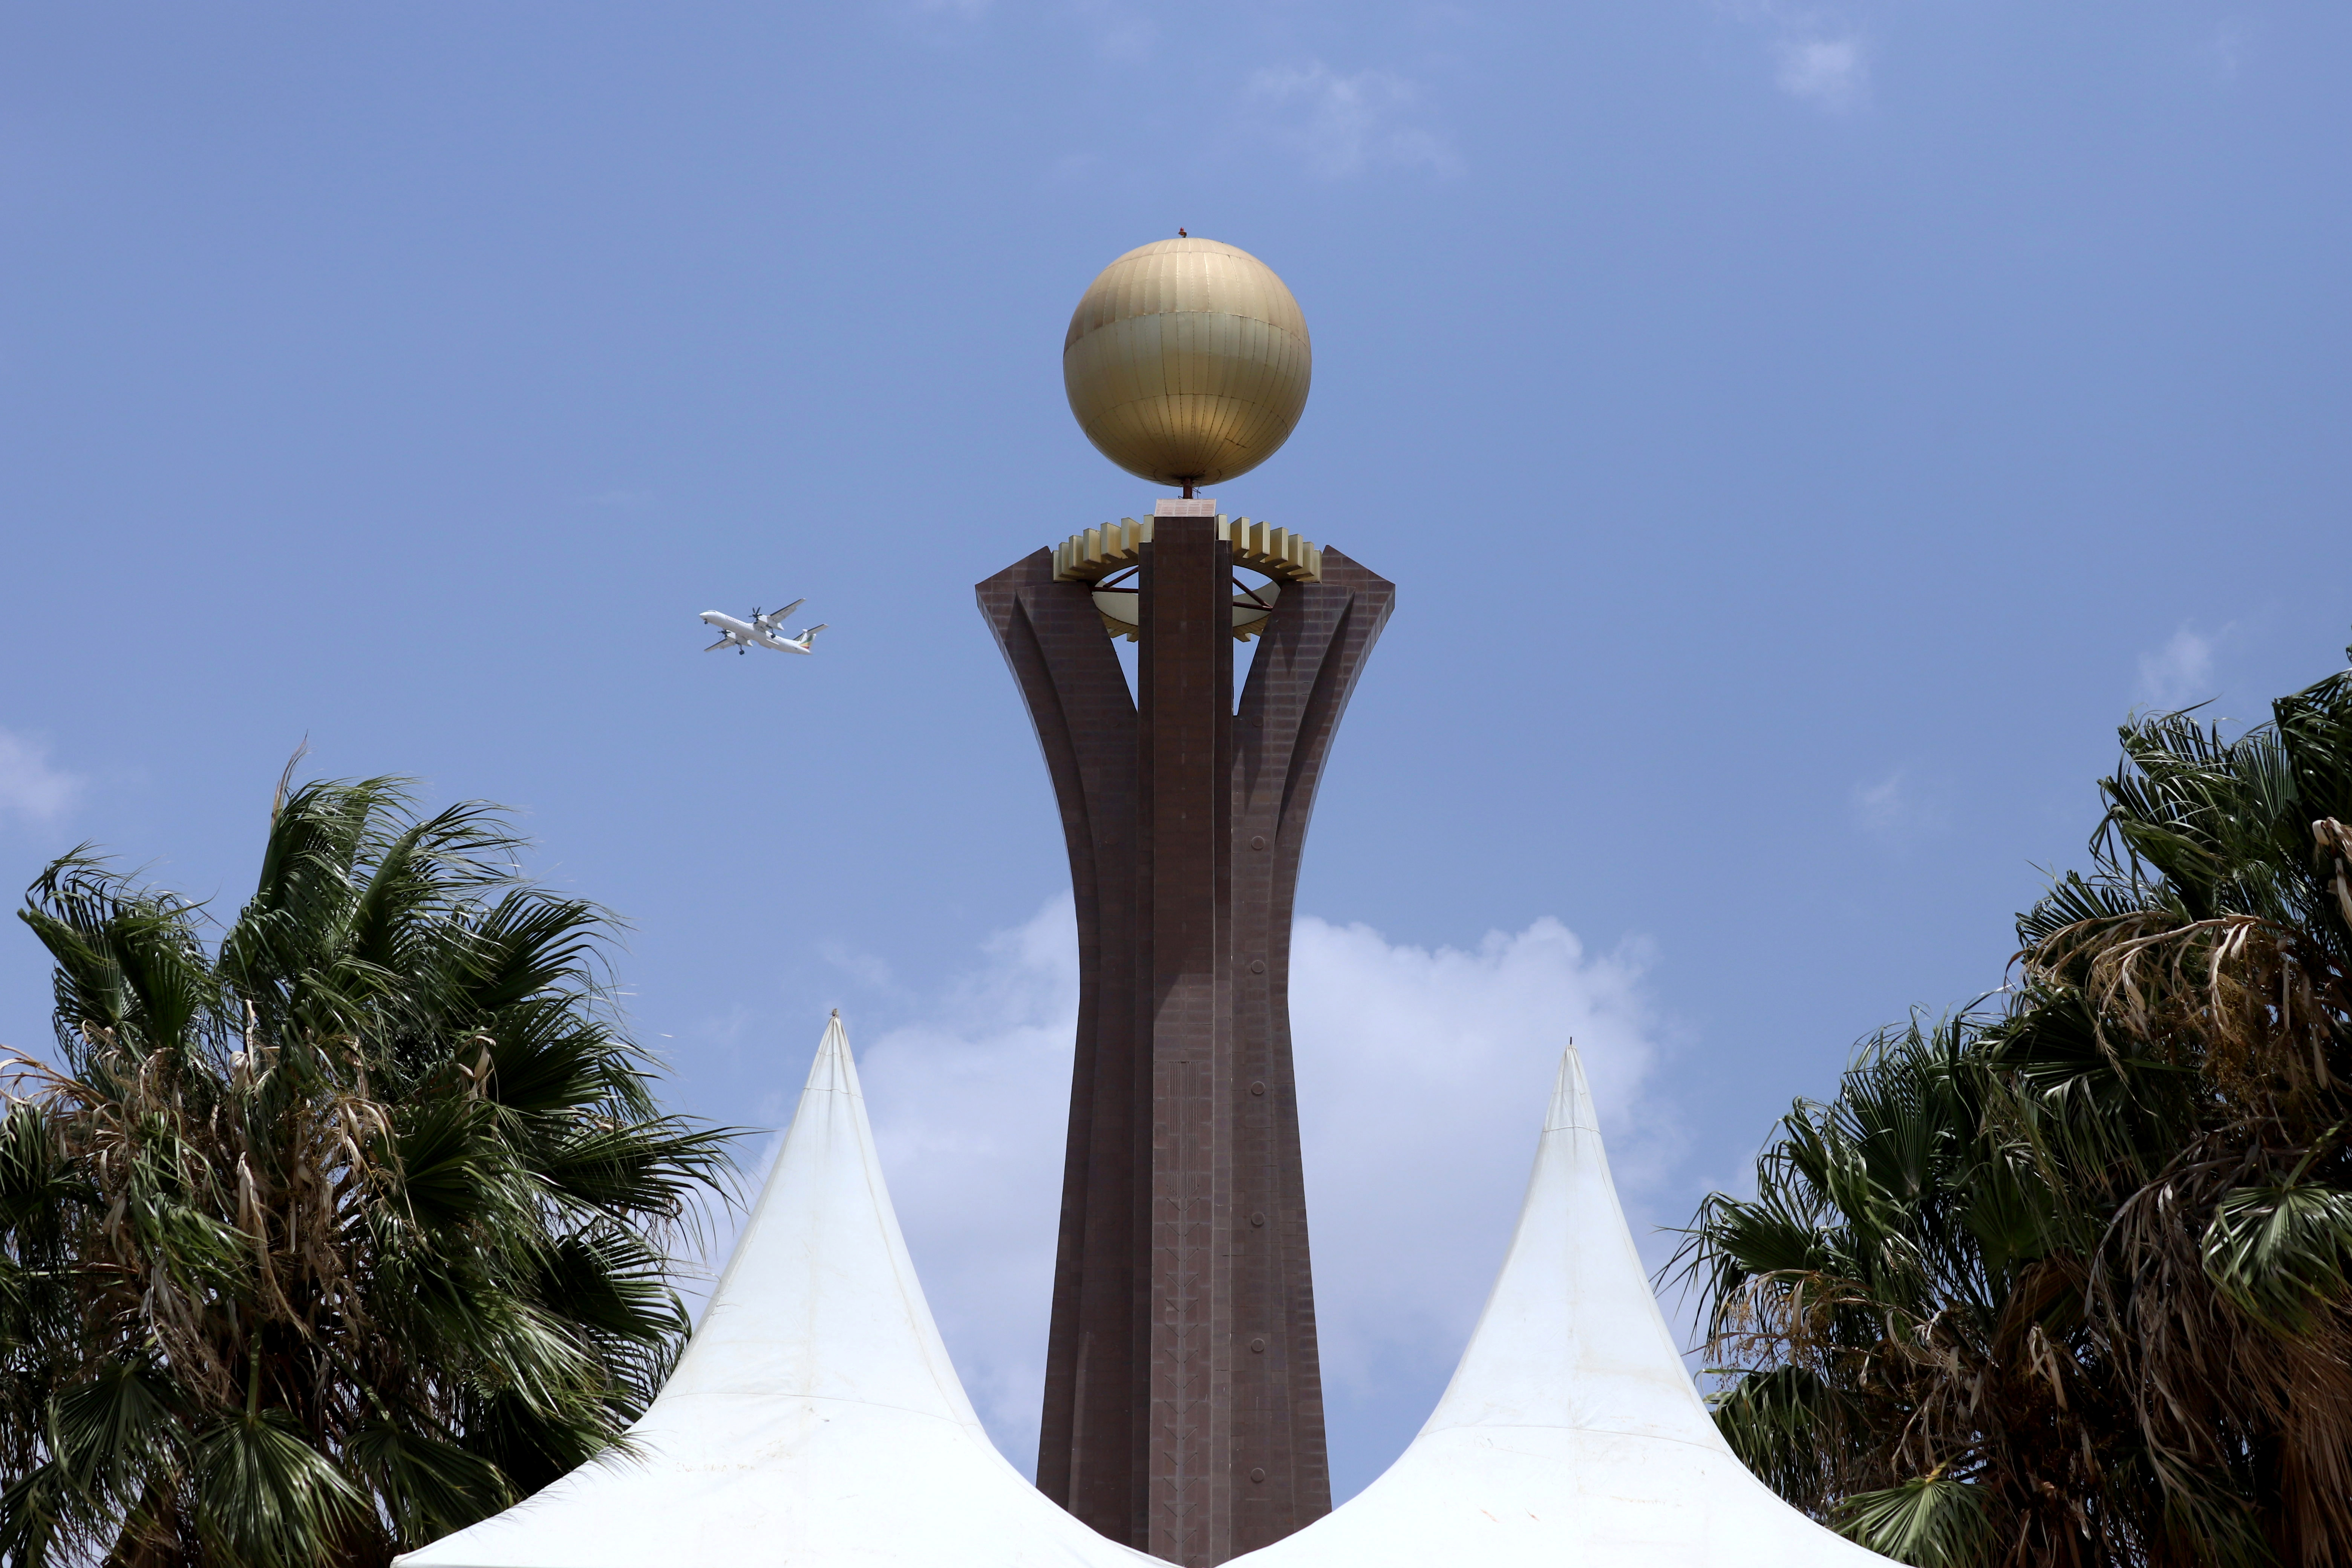 A plane flies next to Tigray Martyrs' monument during the funeral ceremony of Ethiopia's Army Chief of Staff Seare Mekonnen in Mekele, Tigray Region, Ethiopia June 26, 2019.  REUTERS/Tiksa Negeri